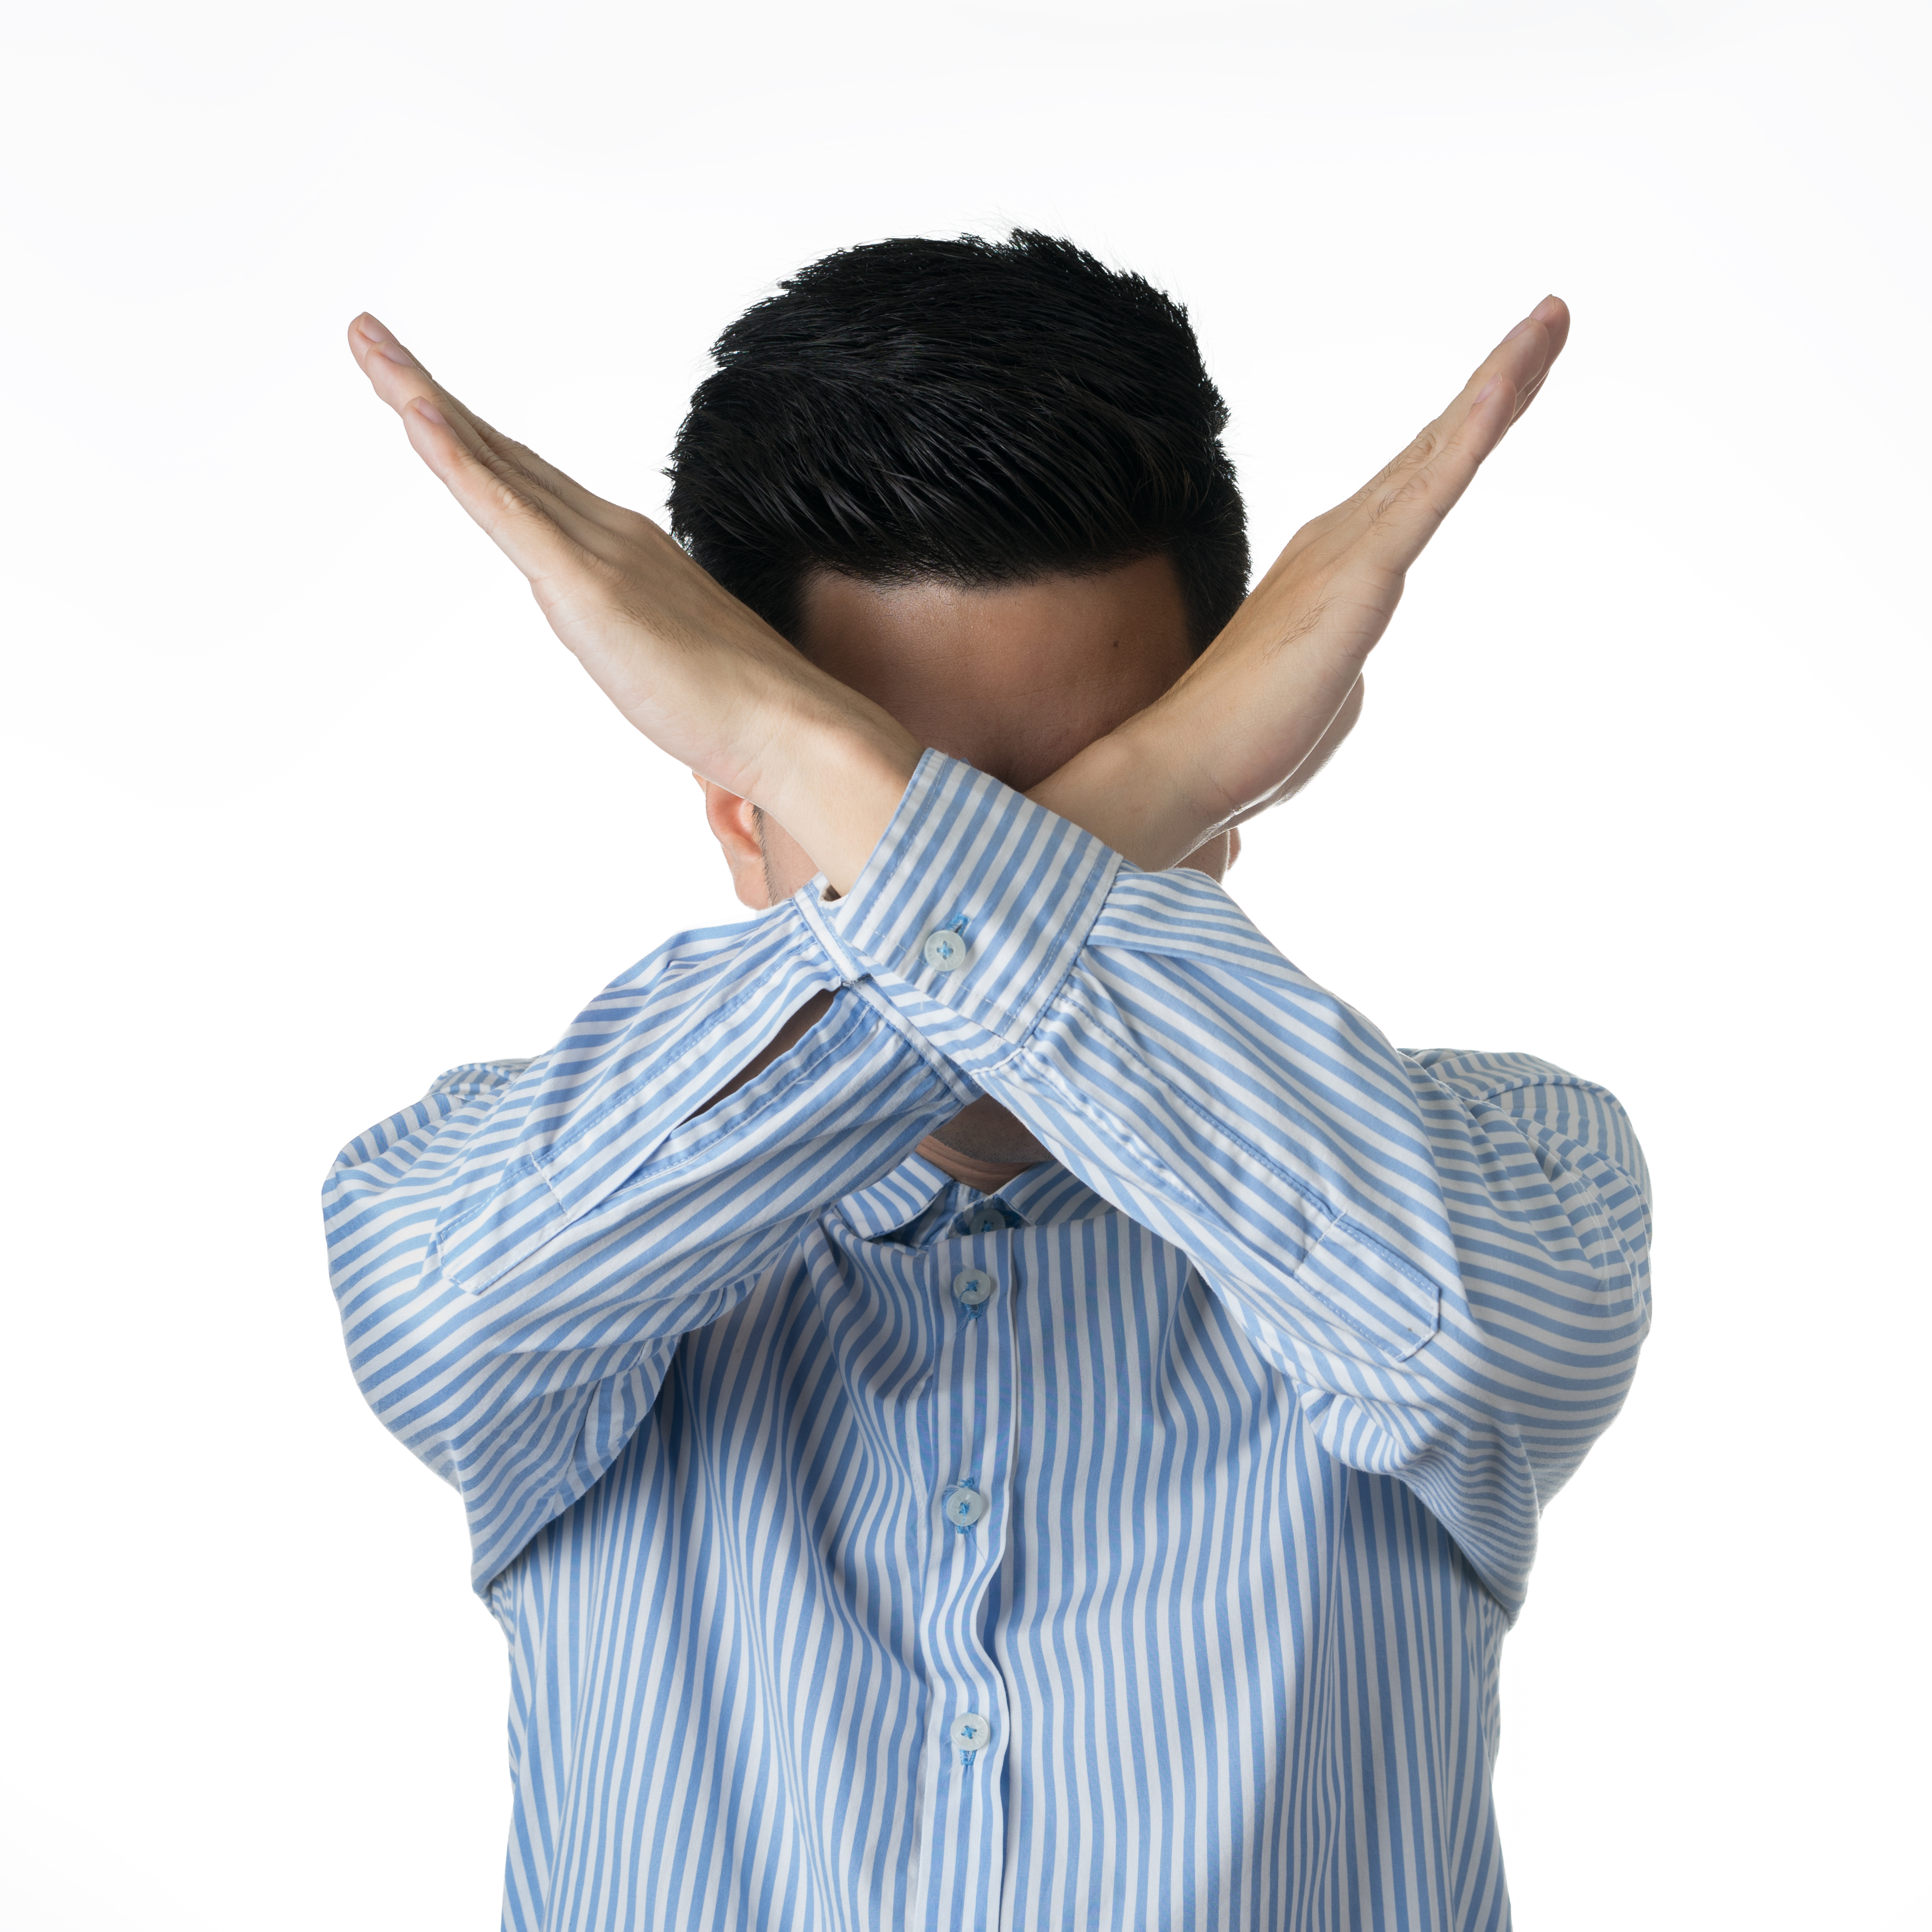 Pictured is a man gesturing an X. SHUTTERSTOCK/ NarongchaiHlaw